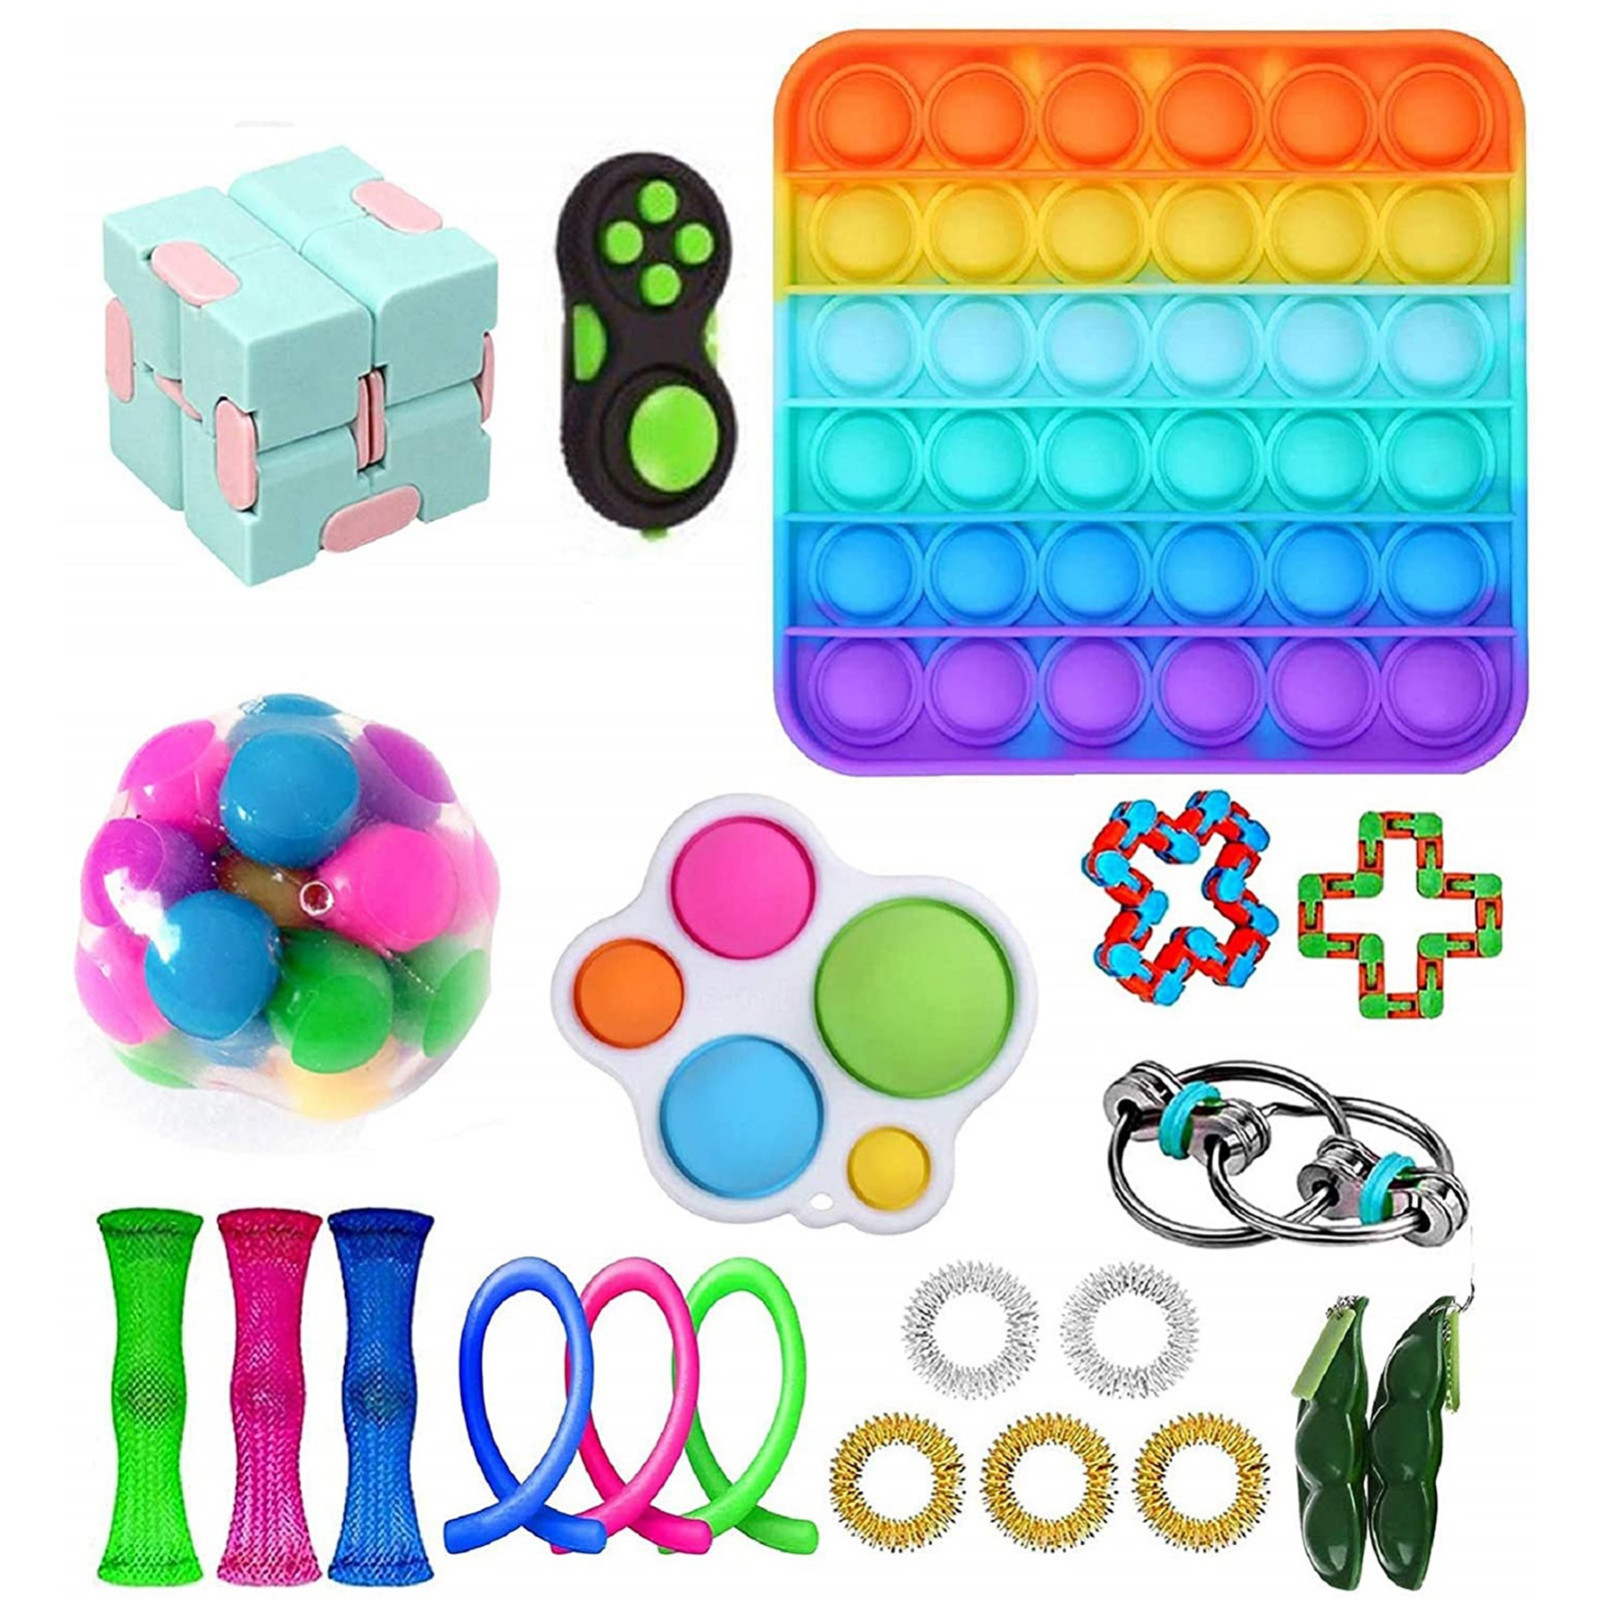 Fidget-Toys Strings Anti-Stress-Set Gift-Pack Relief Sensory Squishy Pop-It Adults Stretchy img3